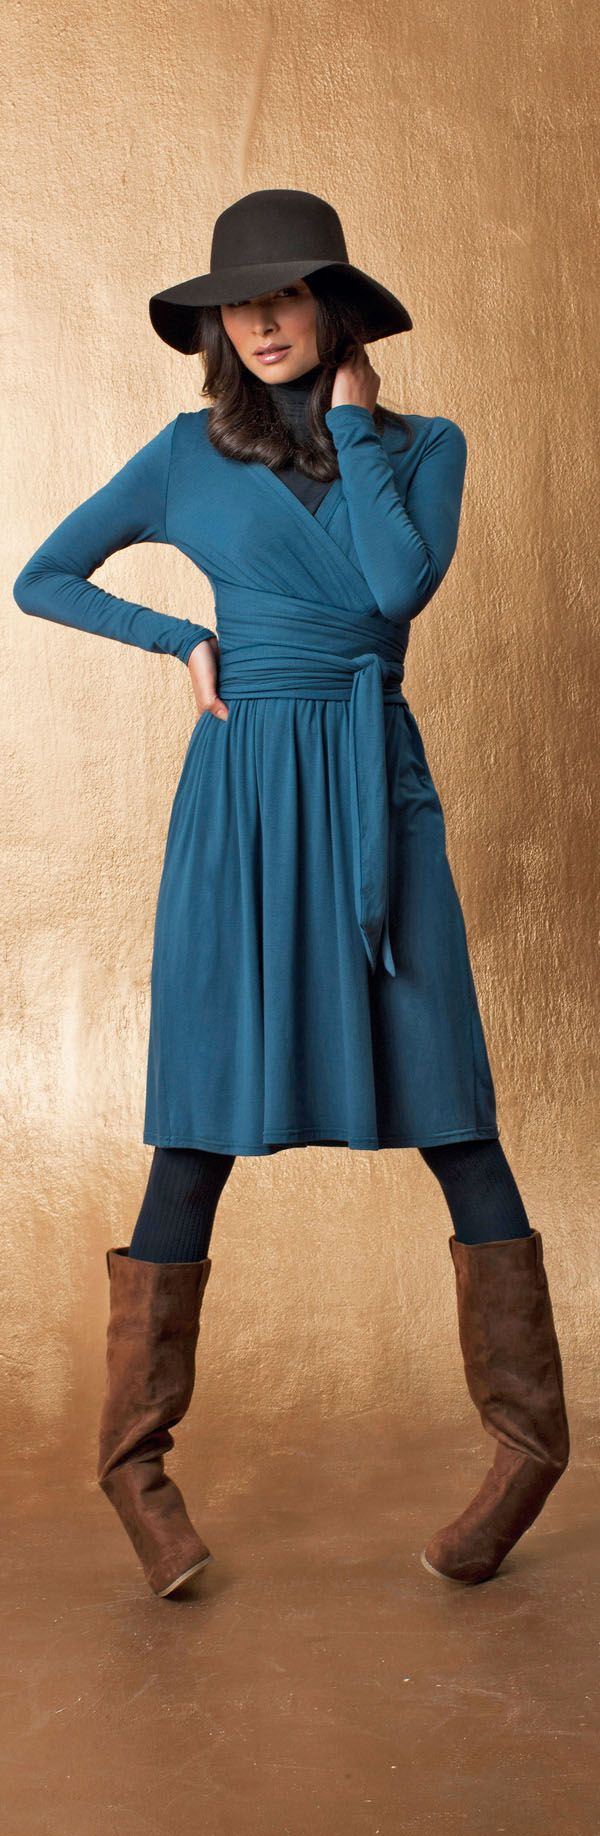 299 best * FALL FASHION for WOMEN OVER 40, 50, 60 images ... - photo #18